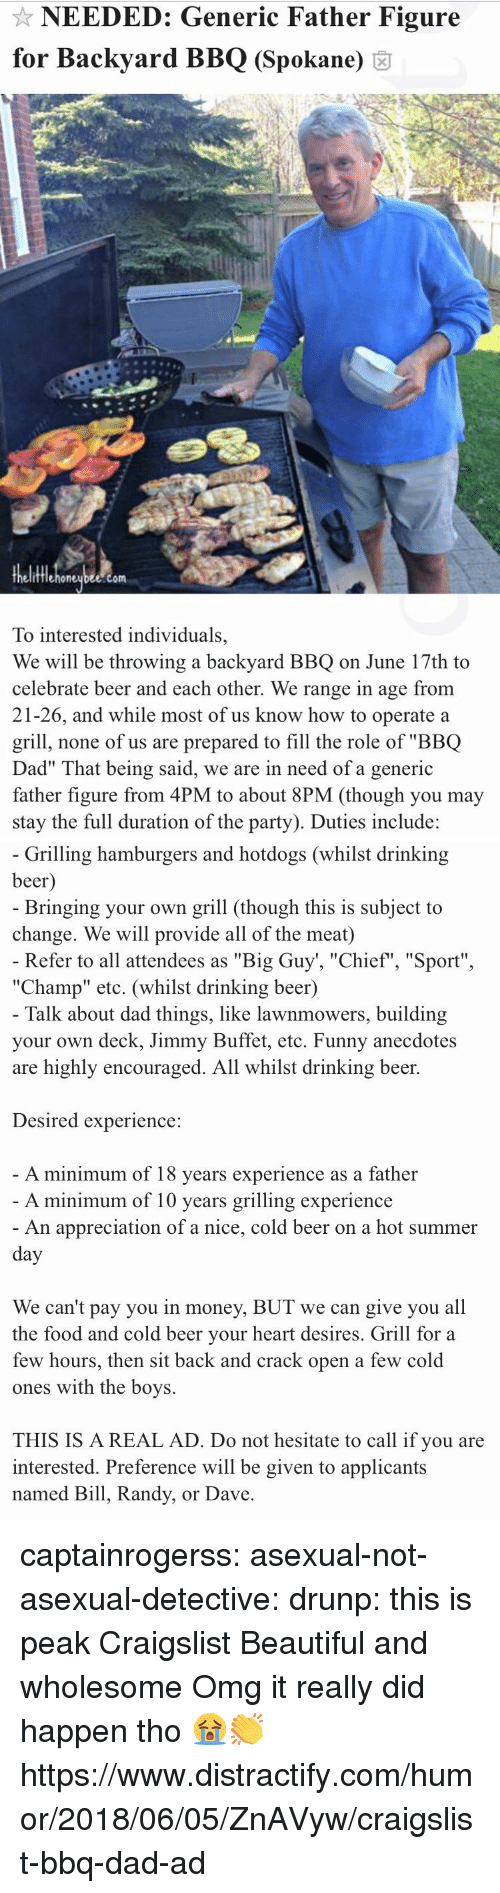 "drinking beer: NEEDED: Generic Father Figure  for Backyard BBQ (Spokane) 6  fflehoneubee.com  To interested individuals,  We will be throwing a backyard BBQ on June 17th to  celebrate beer and each other. We range in age from  21-26, and while most of us know how to operate a  grill, none of us are prepared to fill the role of ""BBQ  Dad"" That being said, we are in need of a generic  father figure from 4PM to about 8PM (though you may  stay the full duration of the party). Duties include:   Grilling hamburgers and hotdogs (whilst drinking  beer  Bringing your own grill (though this is subject to  change. We will provide all of the meat)  Refer to all attendees as ""Big Guy', ""Chief"", ""Sport""  ""Champ"" etc. (whilst drinking beer)  Talk about dad things, like lawnmowers, building  your own deck, Jimmy Buffet, etc. Funny anecdotes  are highly encouraged. All whilst drinking beer.  Desired experience:  A minimum of 18 vears experience as a father  A minimum of 10 years grilling experience  An appreciation of a nice, cold beer on a hot summer  We can't pay you in money, BUT we can give you all  the food and cold beer vour heart desires. Grill for a  few hours, then sit back and crack open a few cold  ones with the boys.  THIS IS A REAL AD. Do not hesitate to call if you are  interested. Preference will be given to applicants  named Bill, Randy, or Dave captainrogerss:   asexual-not-asexual-detective:   drunp: this is peak Craigslist  Beautiful and wholesome   Omg it really did happen tho 😭👏 https://www.distractify.com/humor/2018/06/05/ZnAVyw/craigslist-bbq-dad-ad"